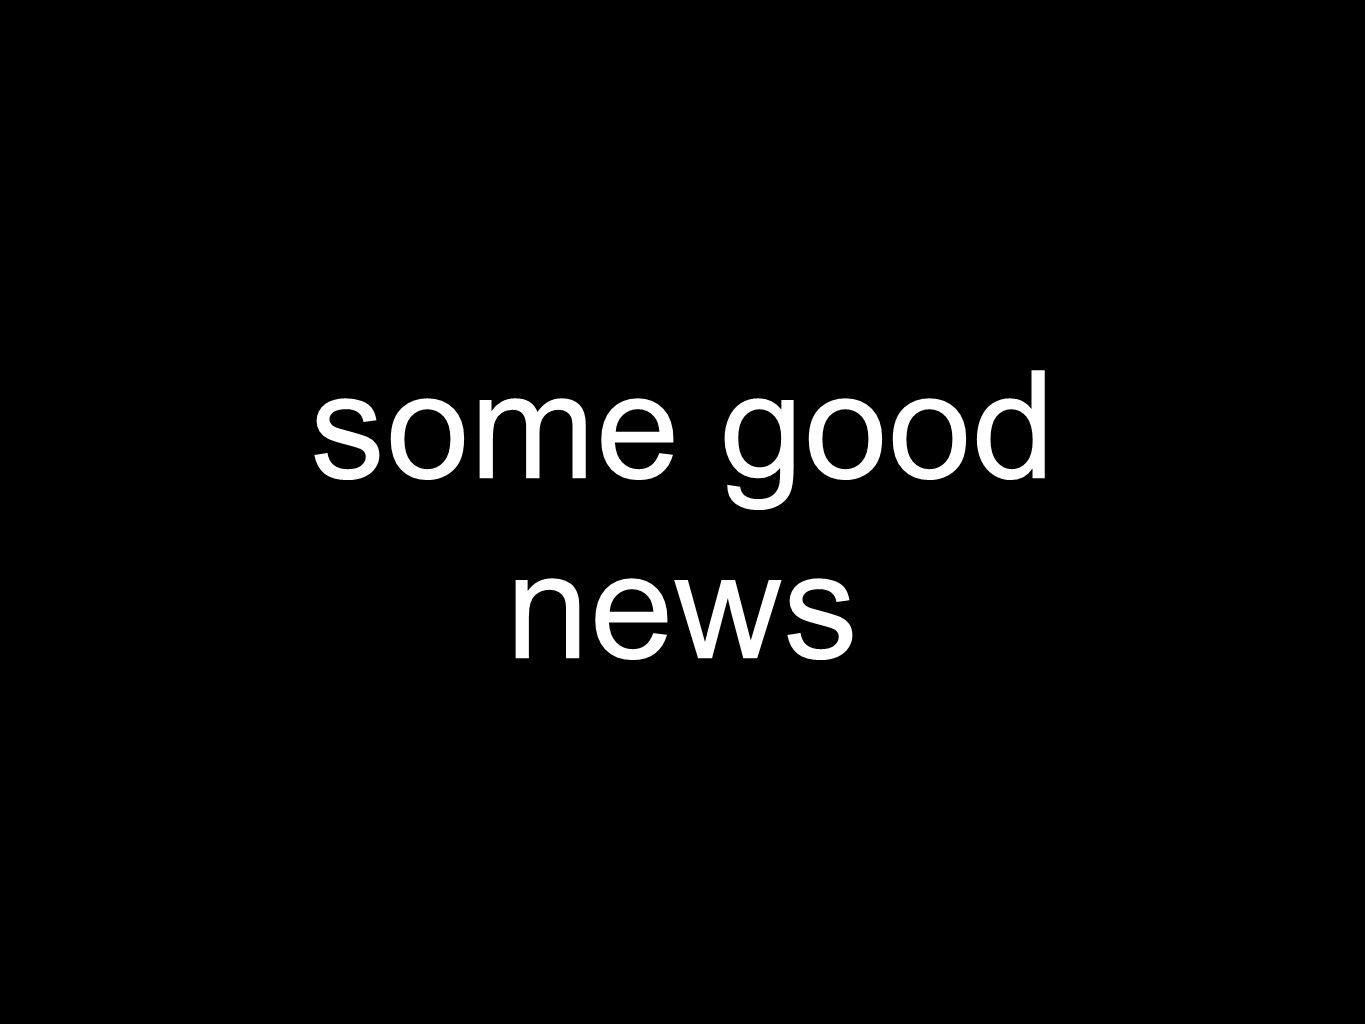 some good news